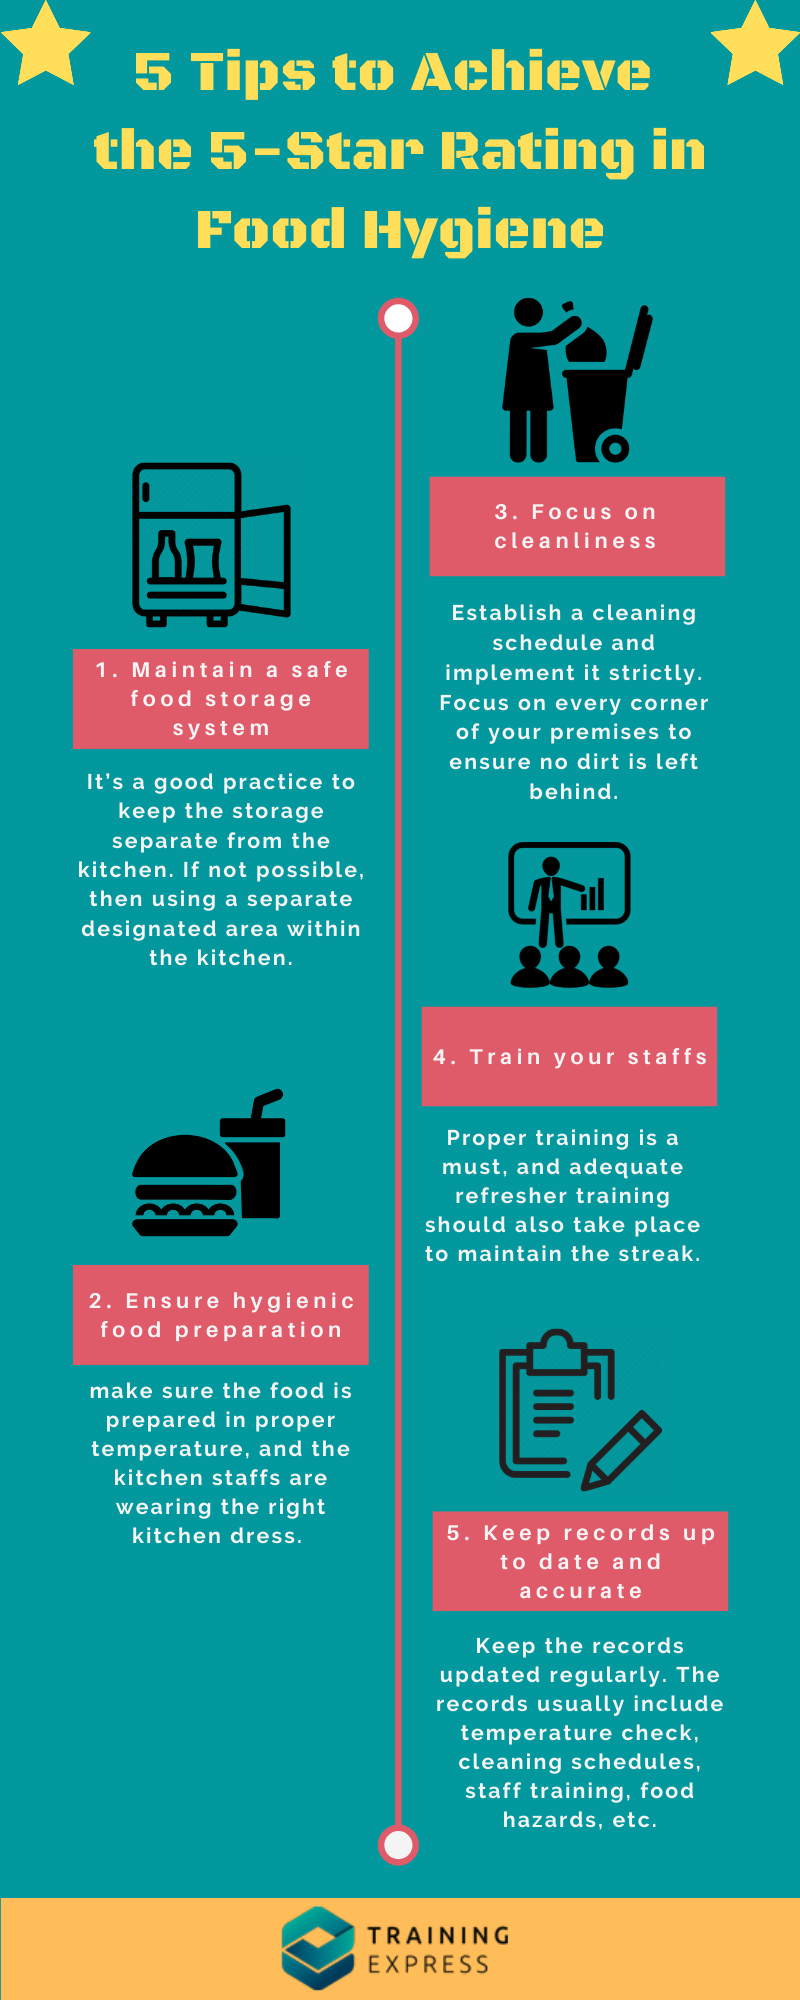 5 Tips to Achieve the 5-Star Rating in Food Hygiene